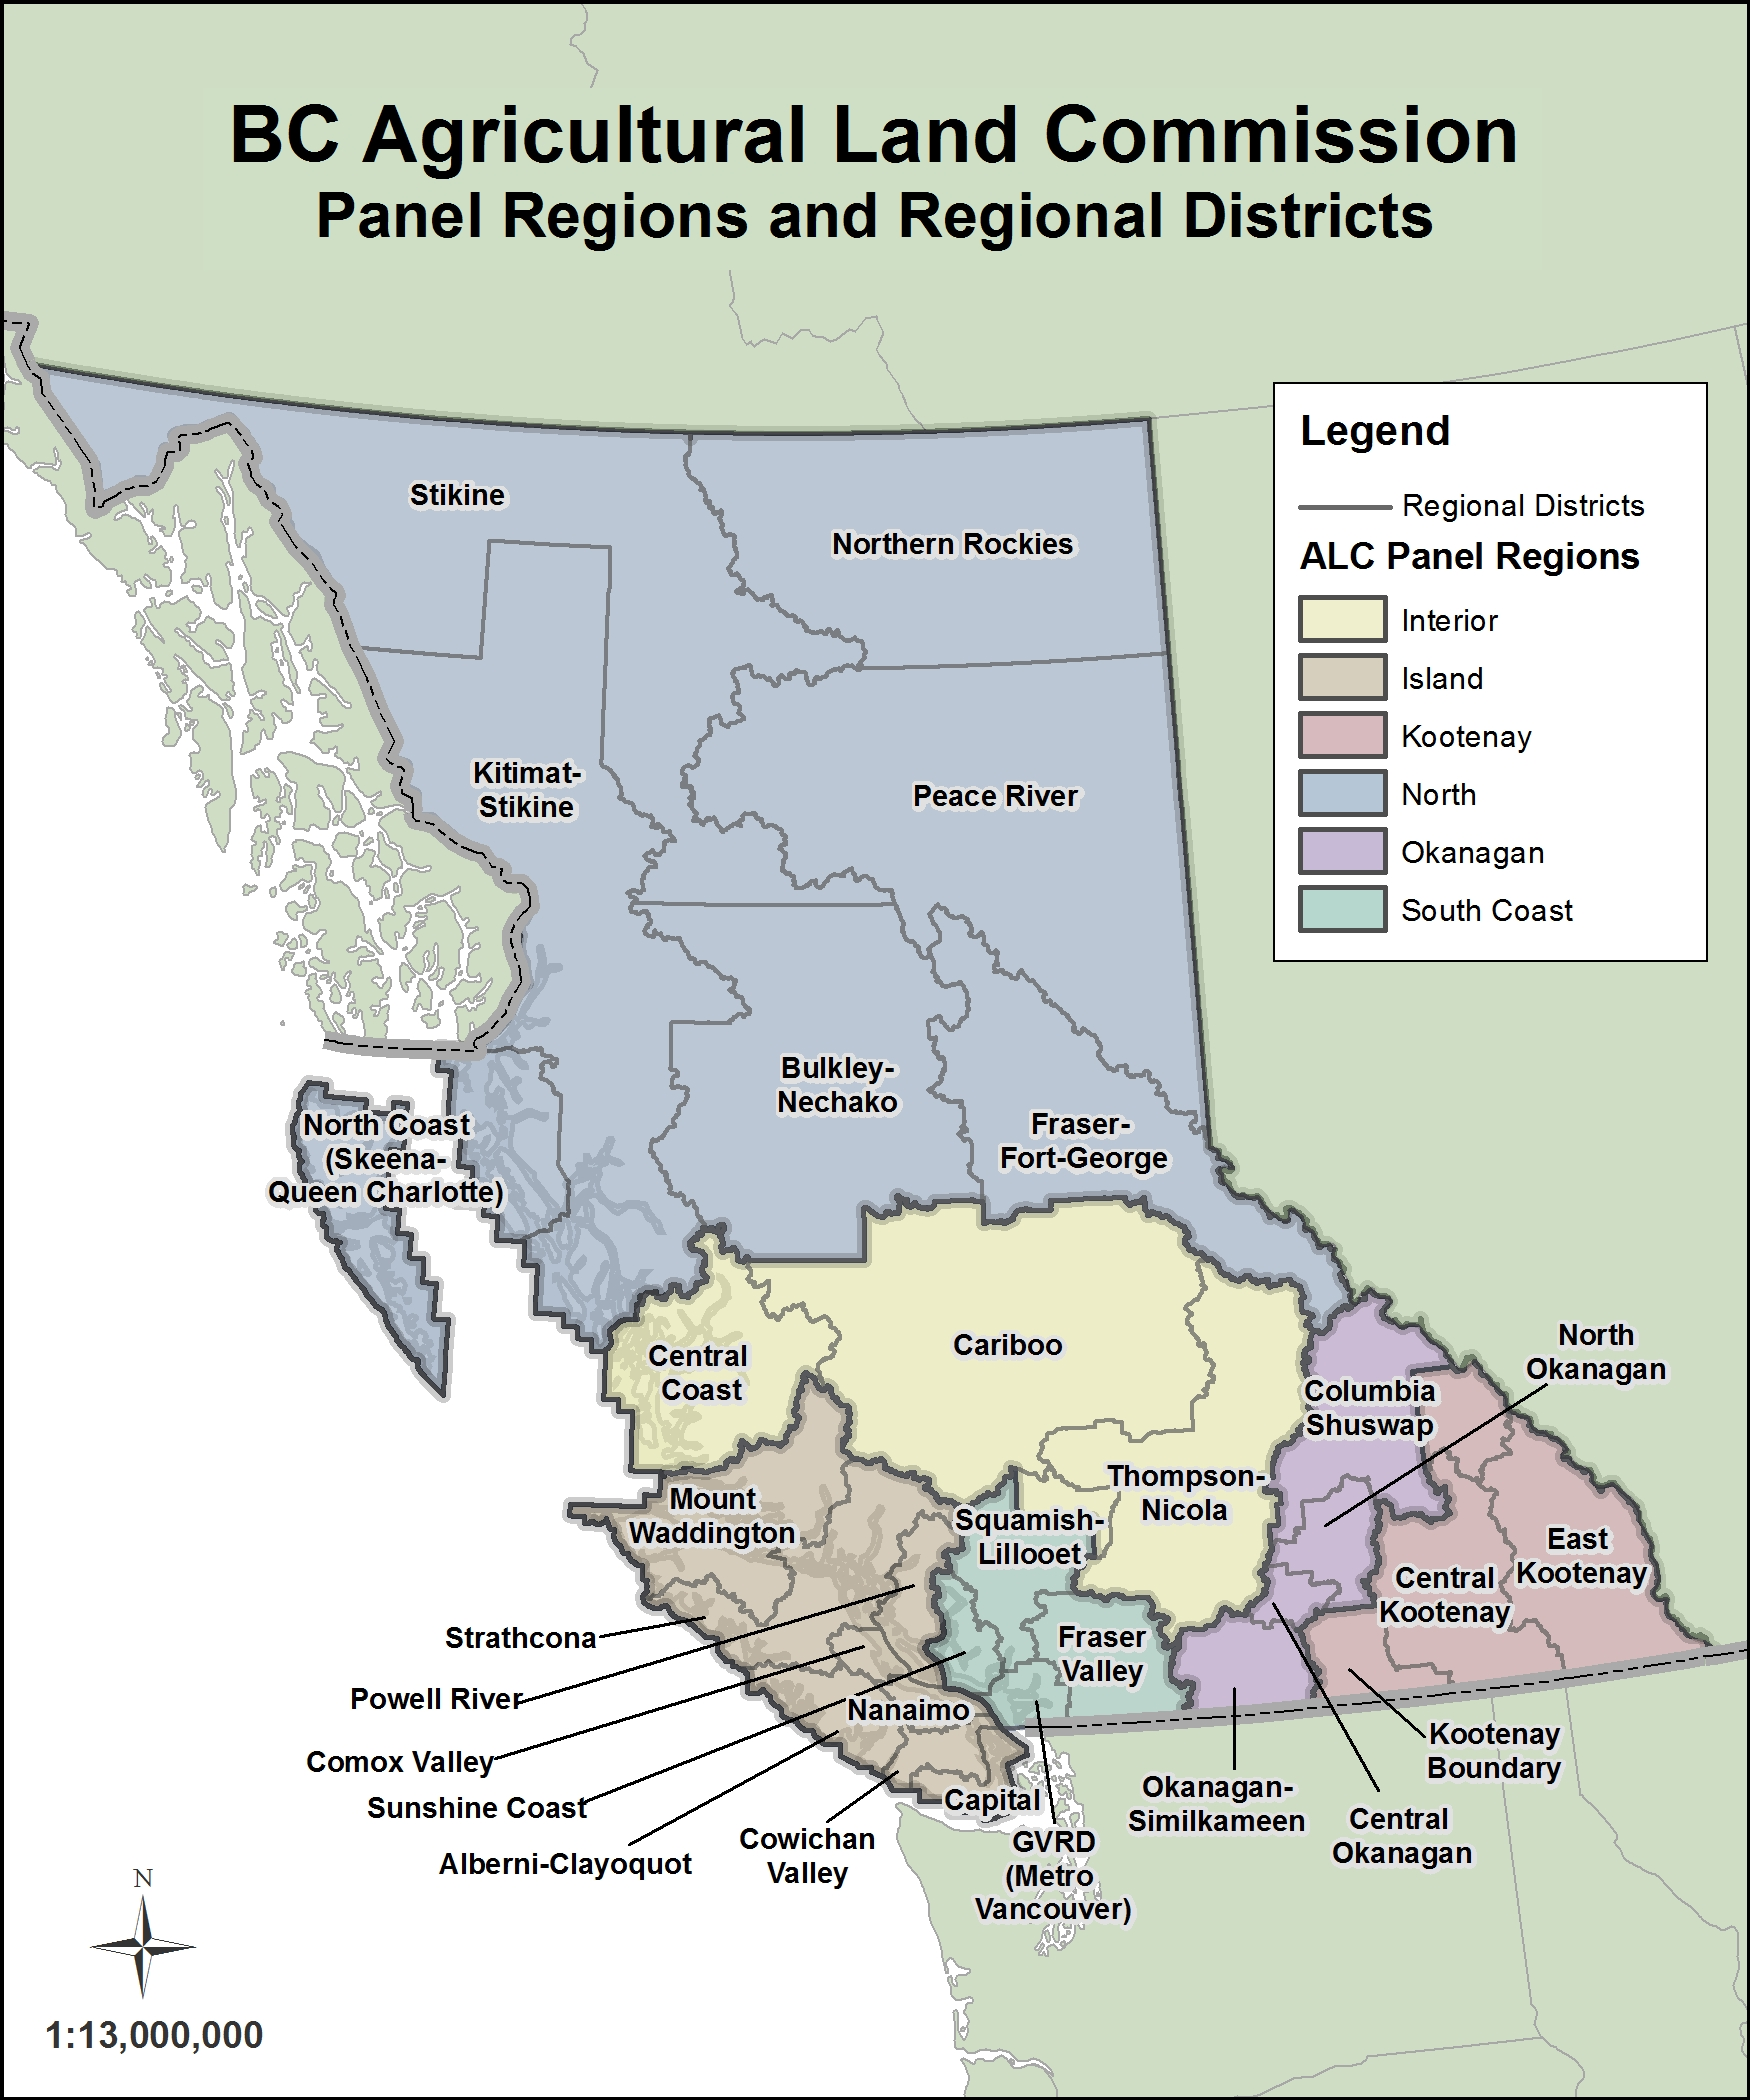 alr zones and panel regions. maps and gis  alc